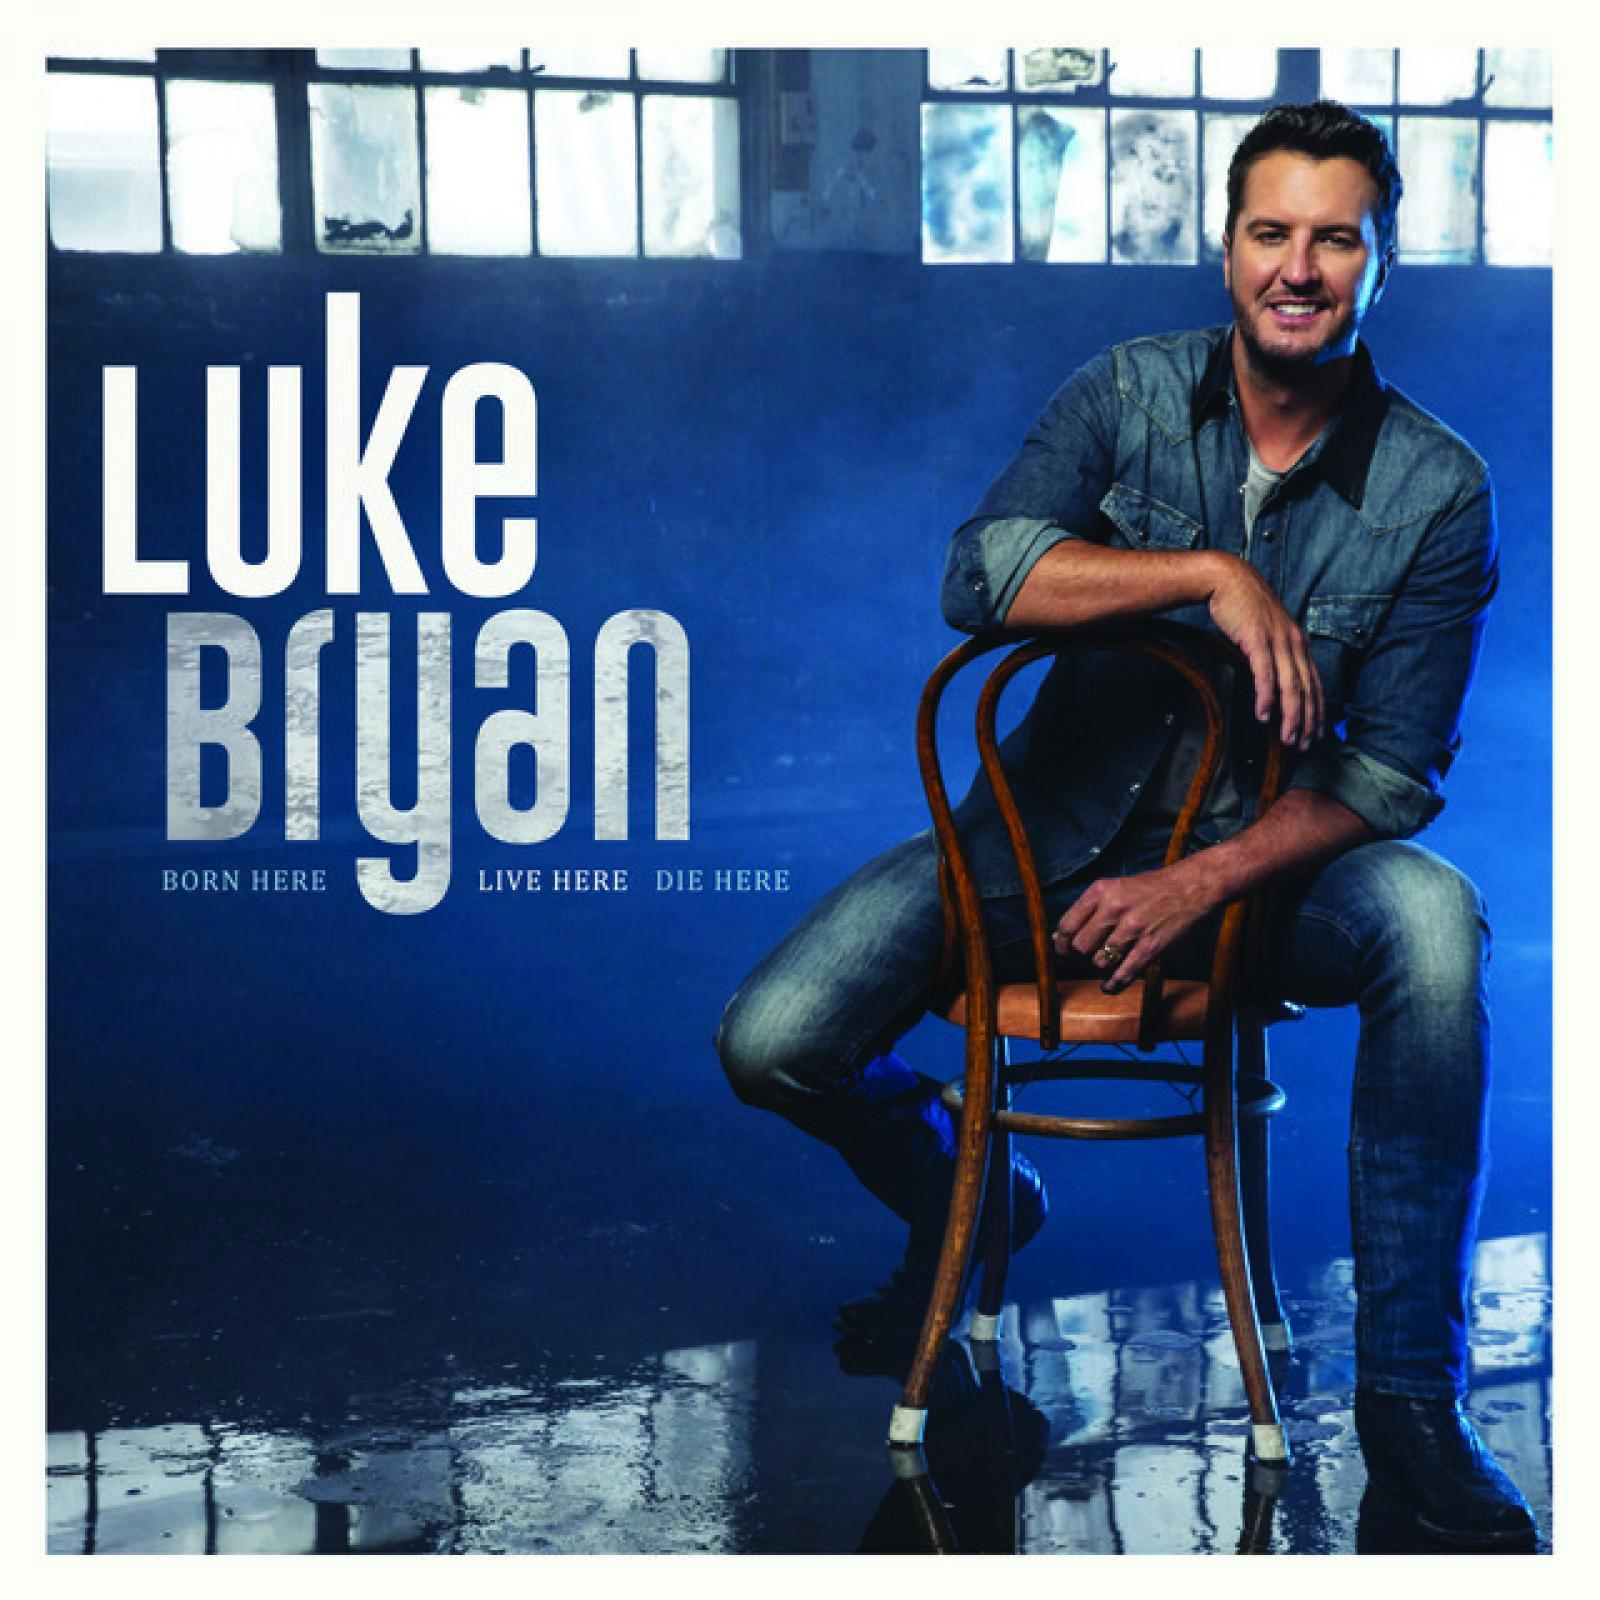 Luke Bryan's Born Here Live Here Die Here Album Out Friday!